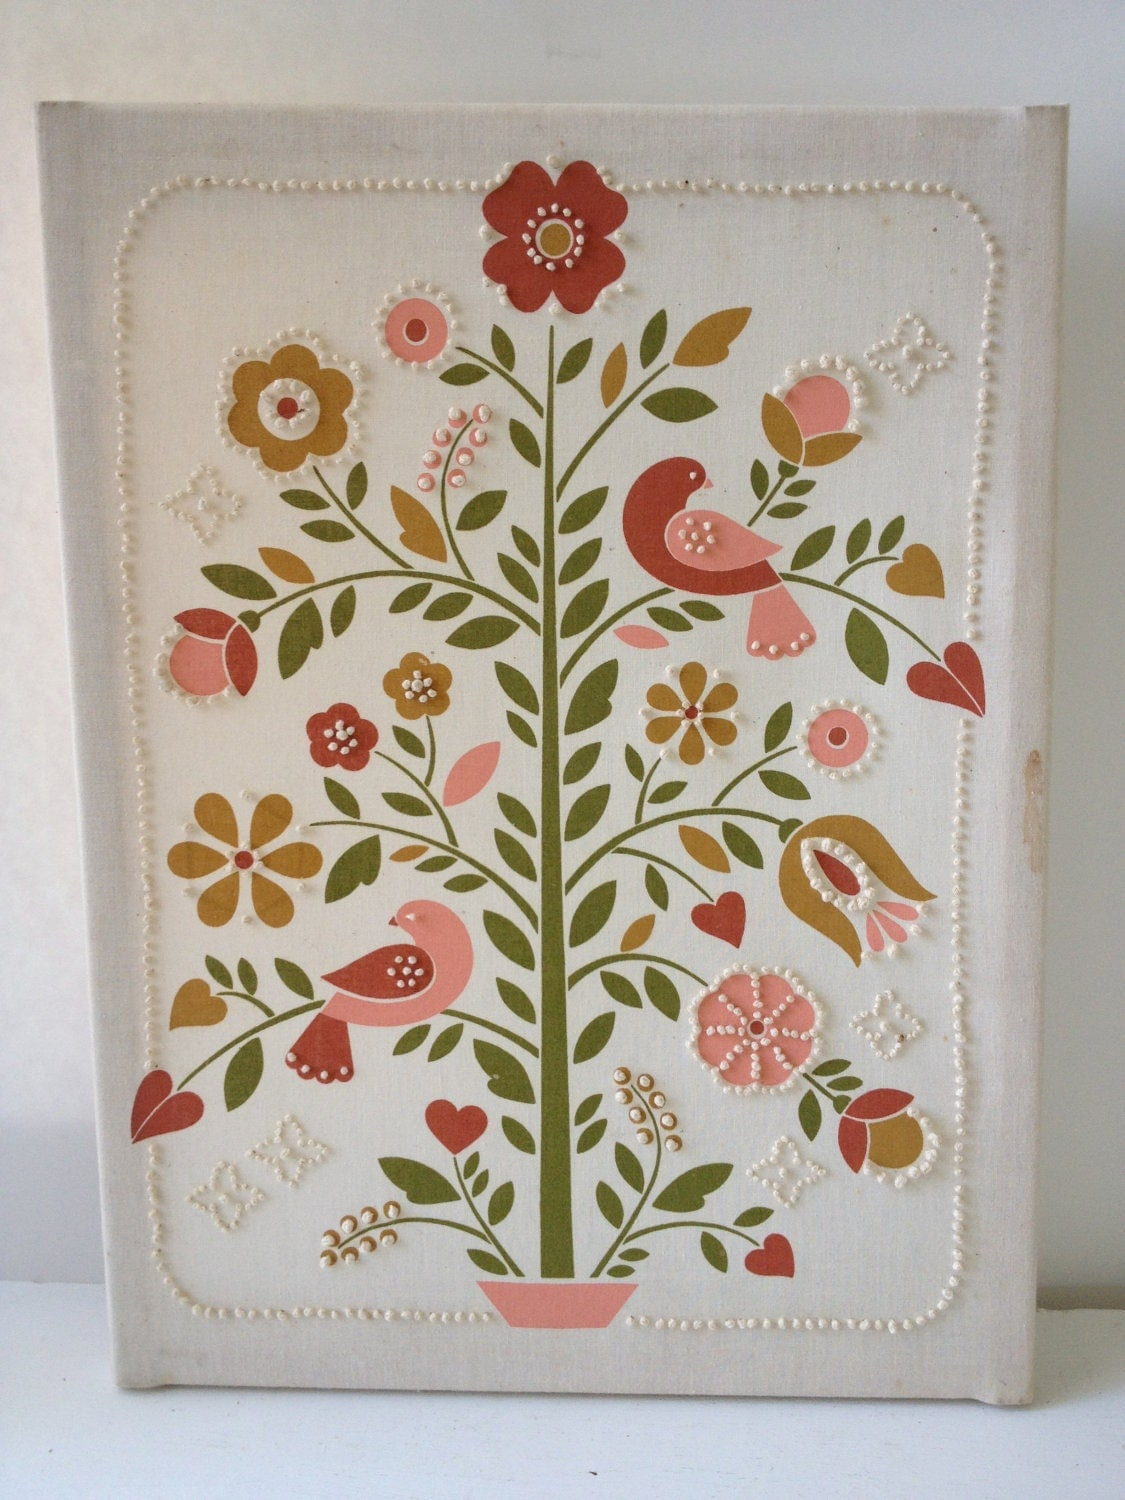 Vintage Crewel/Embroidery - Tree & Bird Art